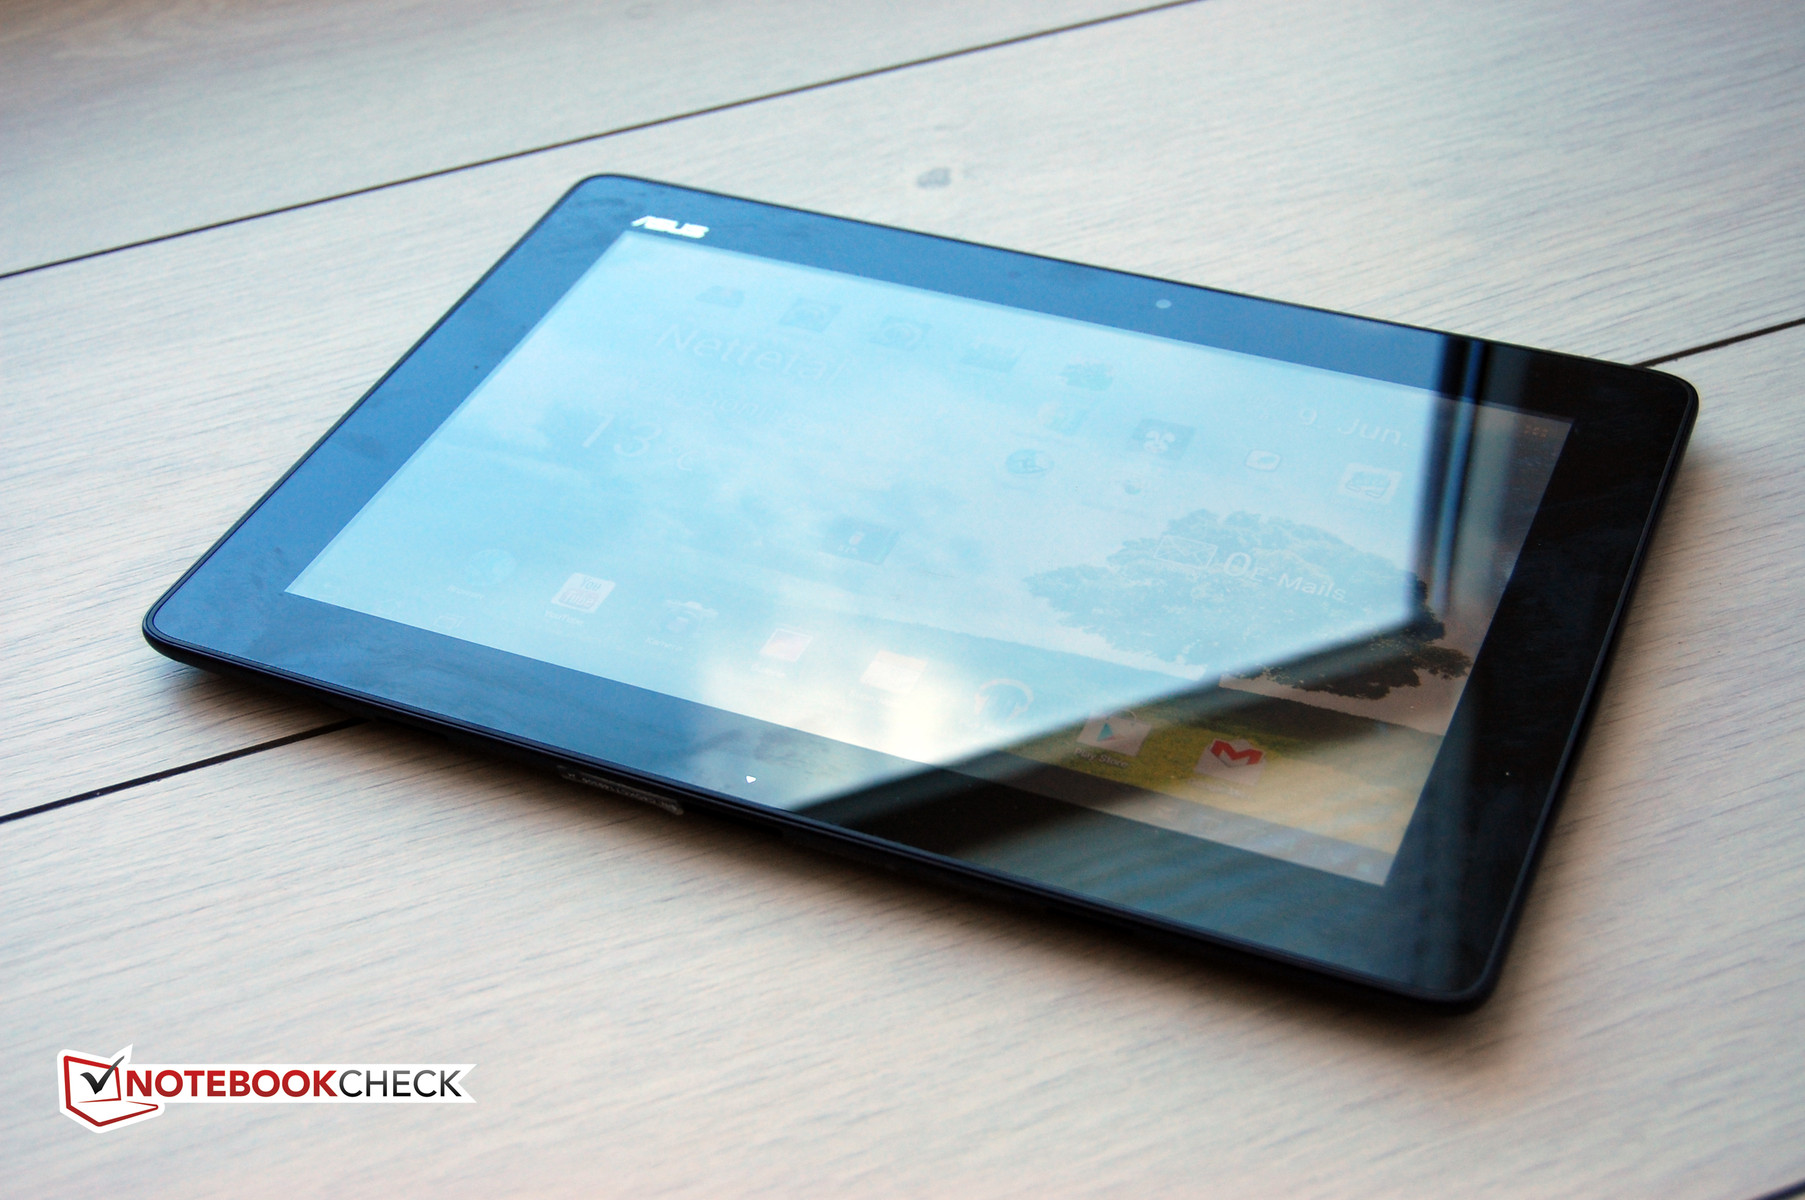 Review Asus Transformer Pad TF300T Tablet/MID - NotebookCheck net